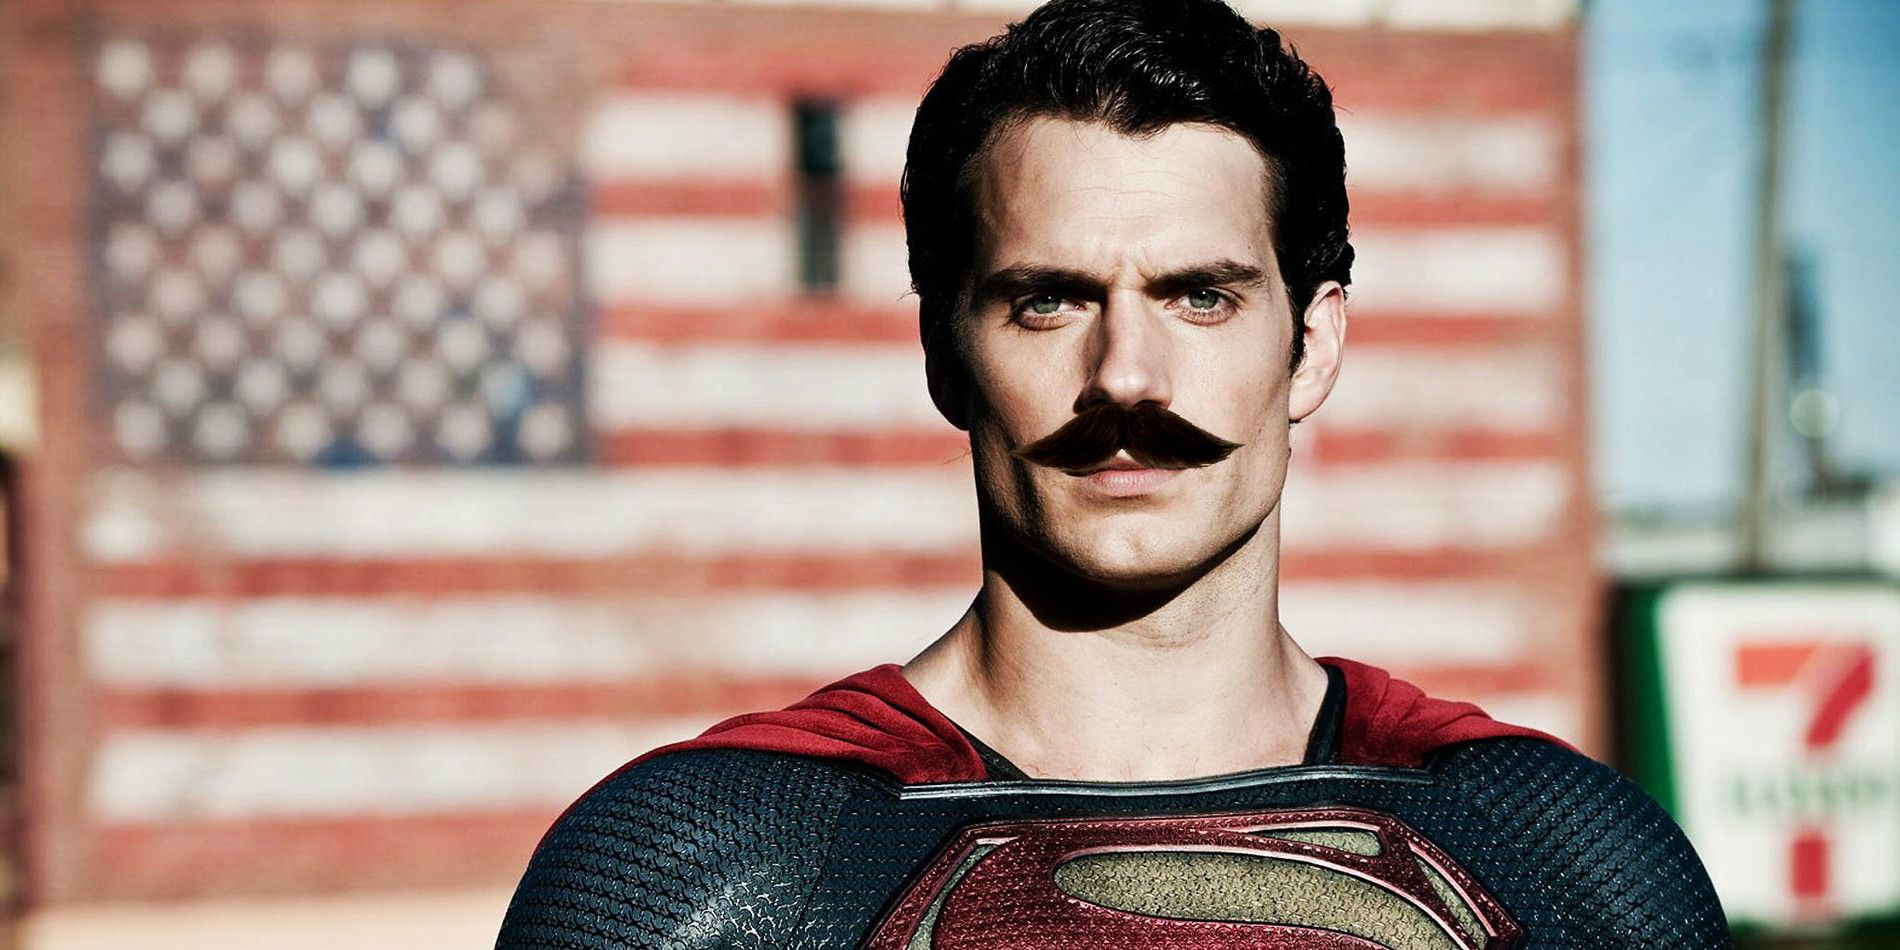 https://static0.srcdn.com/wp-content/uploads/2017/11/Henry-Cavill-Superman-Mustache-Justice-League.jpg?q=50&w=1000&h=500&fit=crop